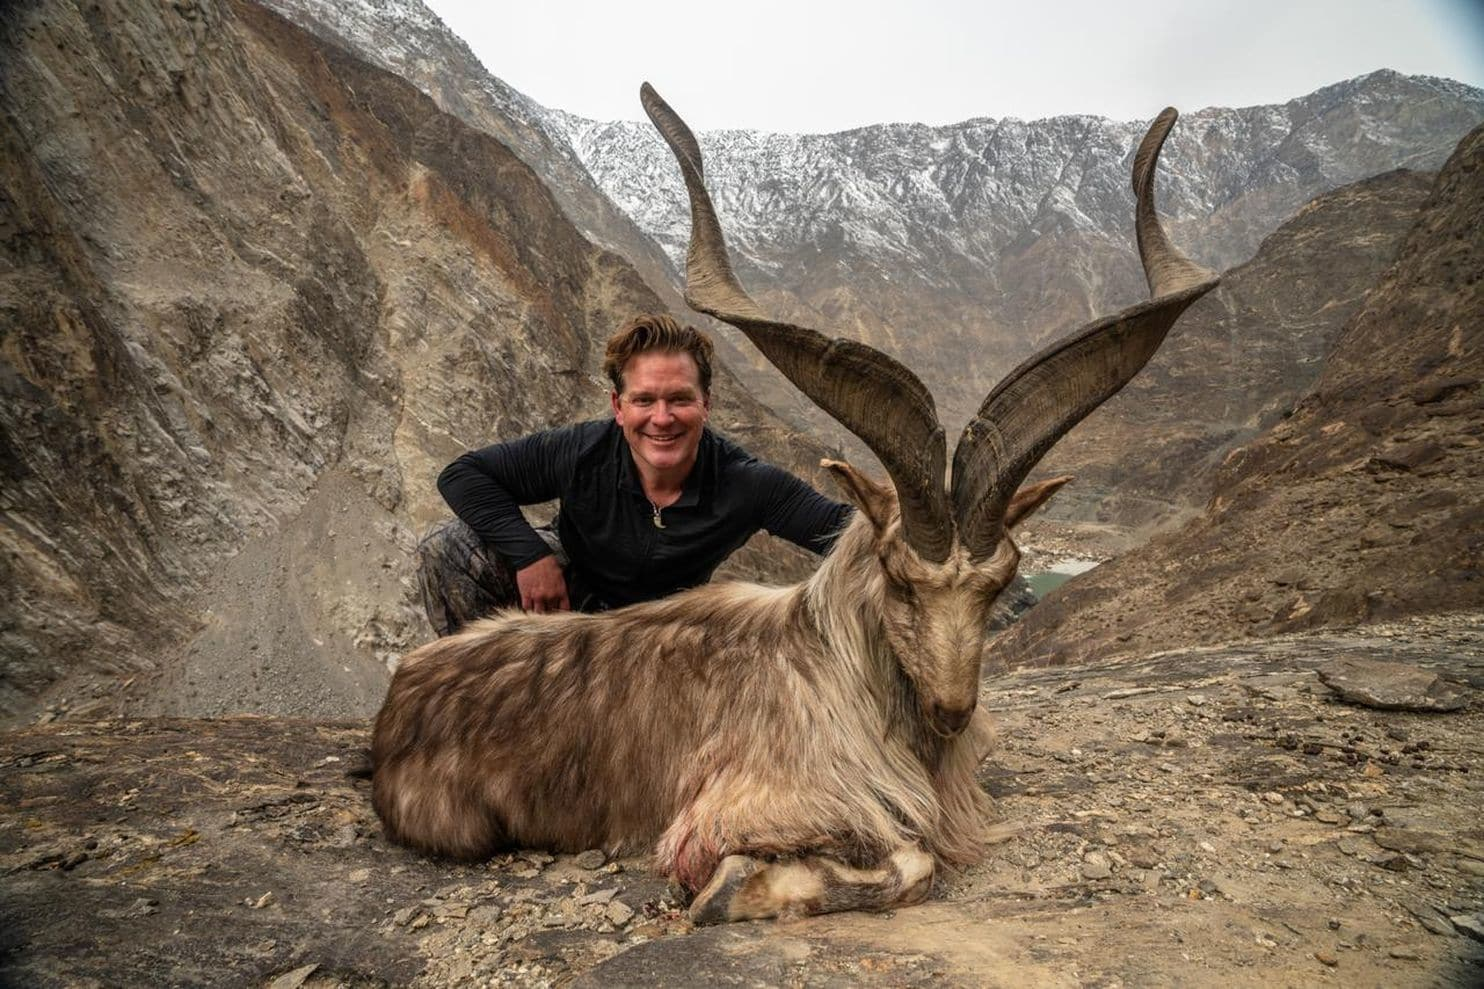 American Trophy Hunter Paid $110K To Hunt Endangered Goat In Pakistan